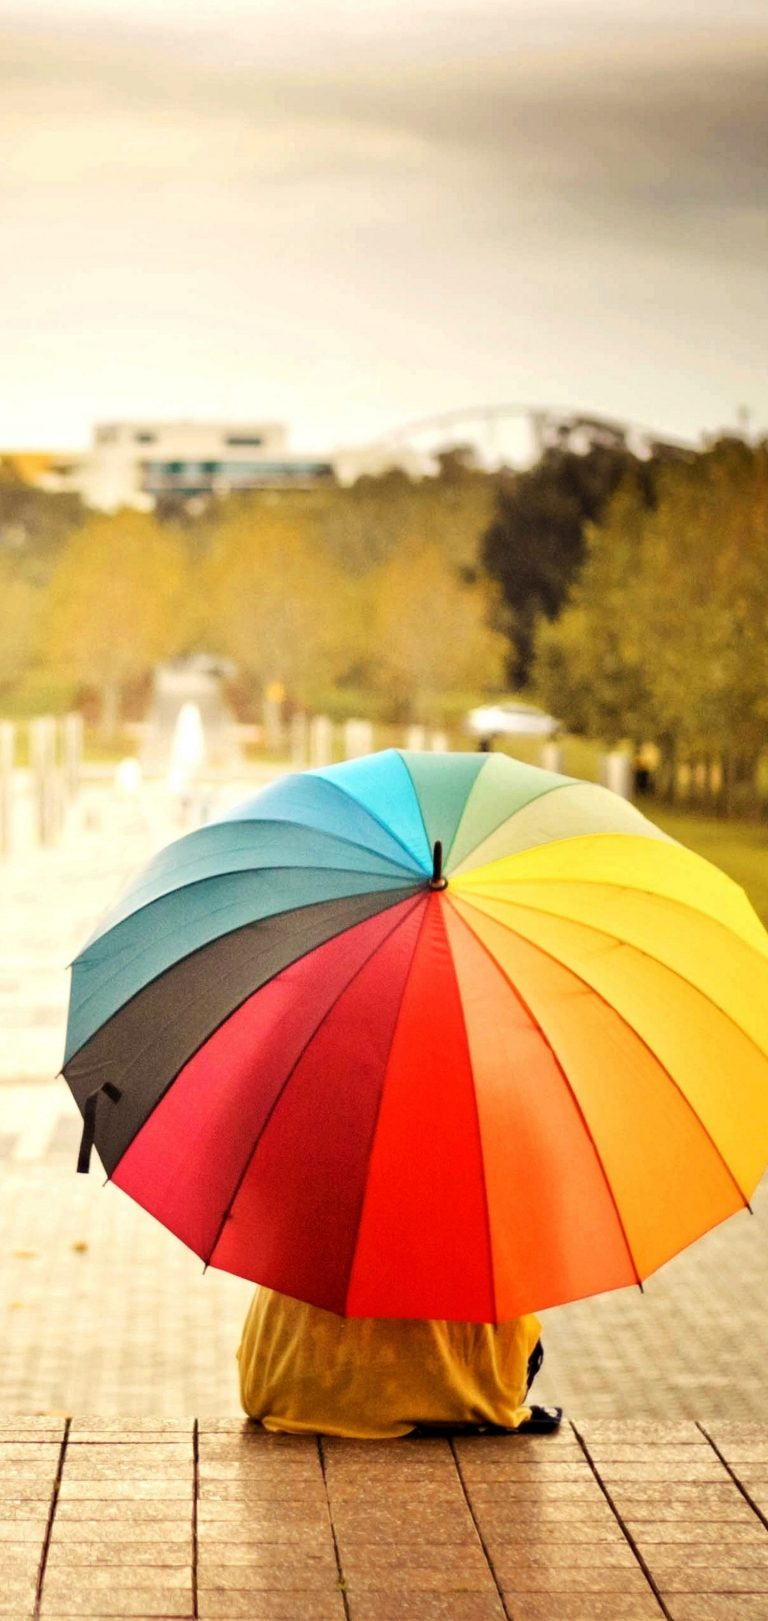 Umbrellas Colorful Kids Rainbow Wallpaper 1440x3040 768x1621